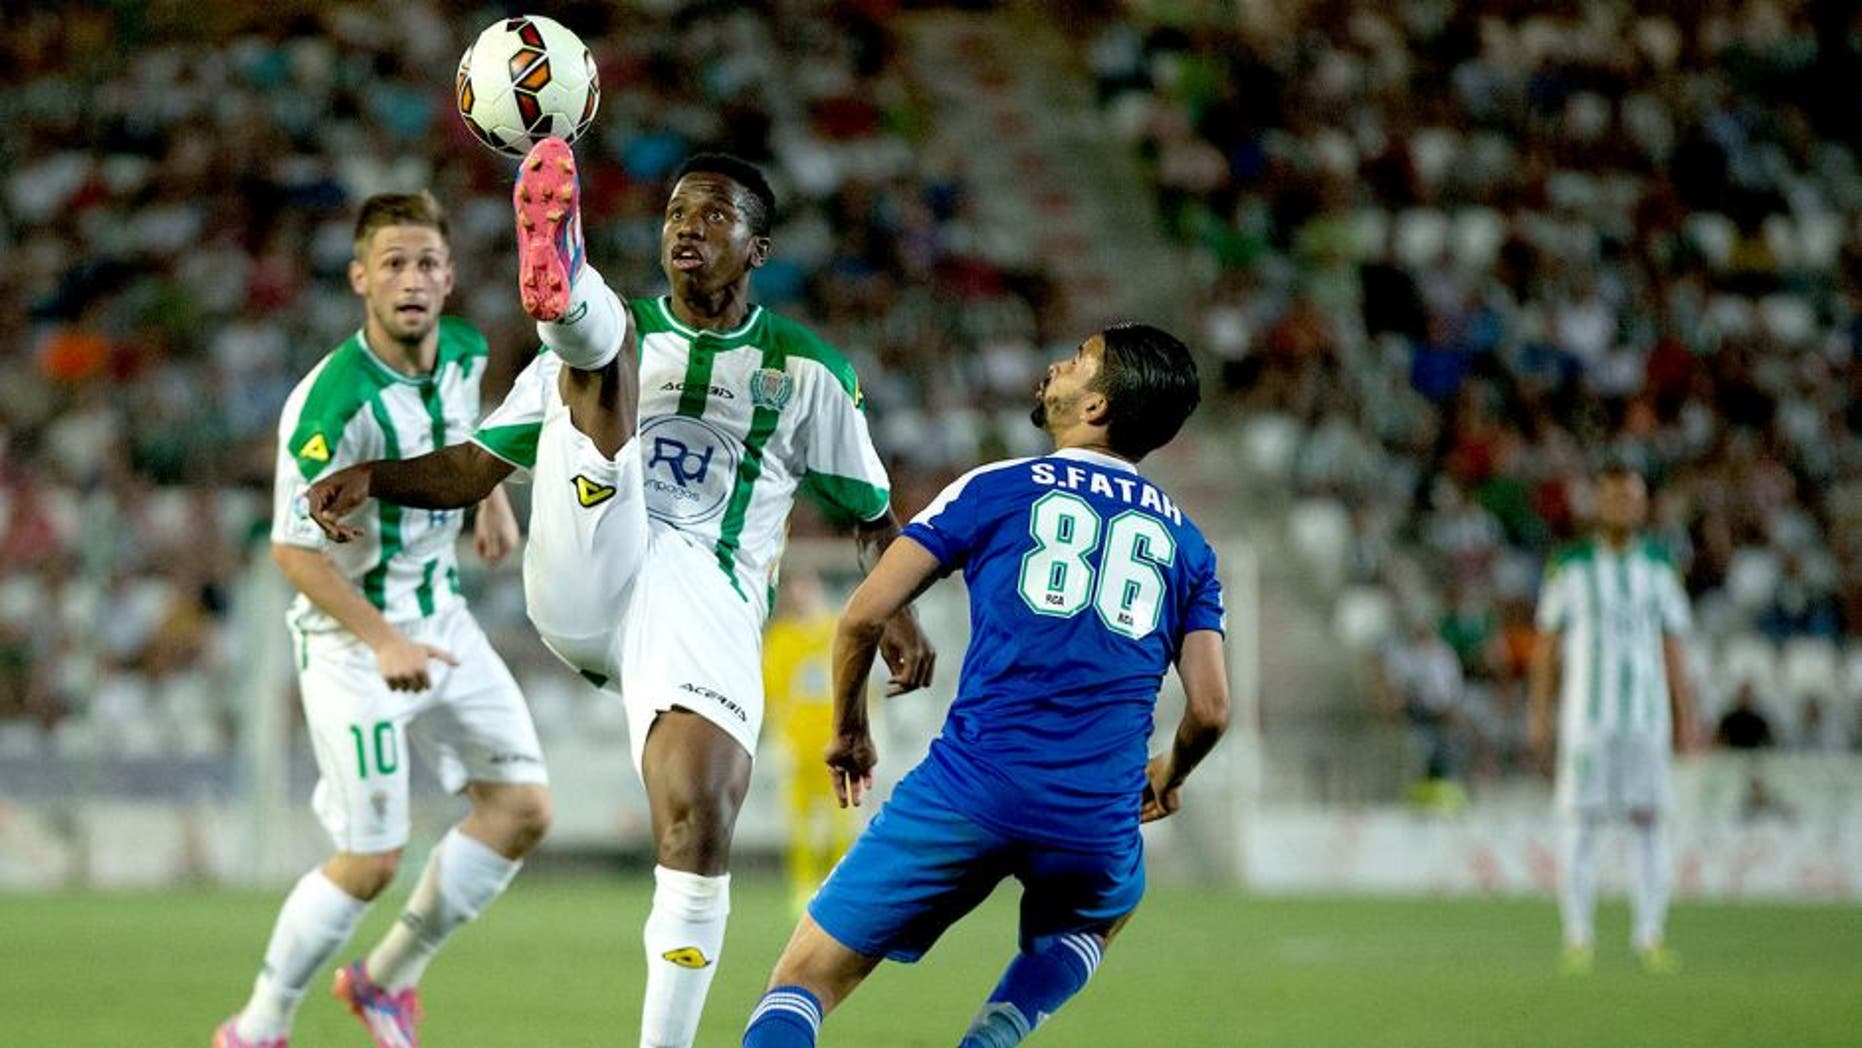 CORDOBA, SPAIN - AUGUST 06: Patrick Ekeng (2ndR) competes for the ball with Fatah (L) of Raja de Casablanca ahead his teammate Federico Cartabia (L) during the pre season friendly match between Cordoba CF and Raja de Casablanca at El Arcangel stadium on August 6, 2014 in Cordoba, Spain. (Photo by Gonzalo Arroyo Moreno/Getty Images)